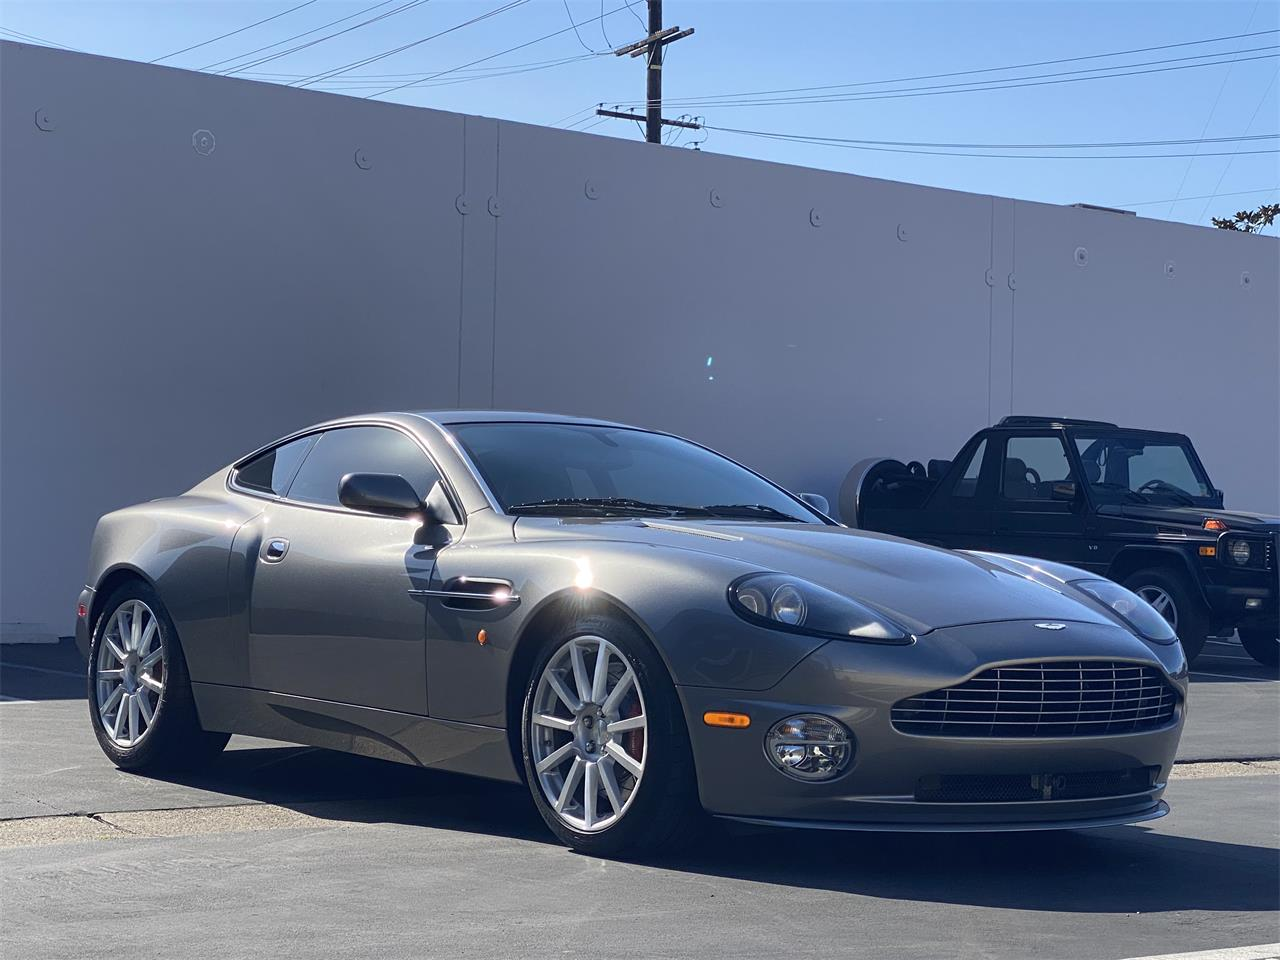 2005 Aston Martin Vanquish (CC-1421848) for sale in newport beach, California